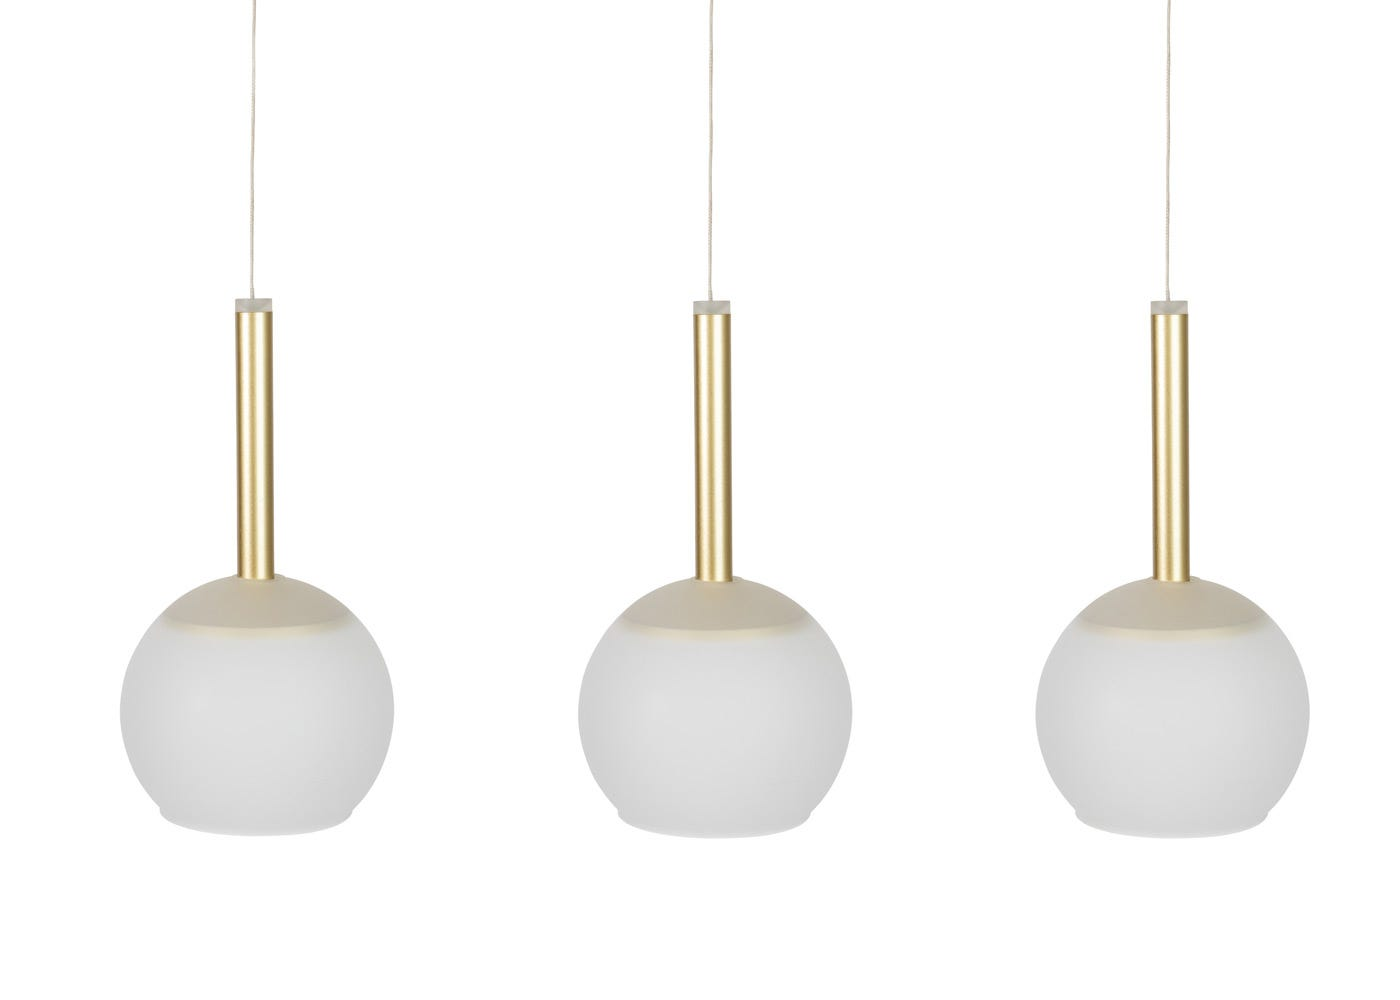 Disc 3 long LED pendant in gold with frosted glass shades (sold separately).